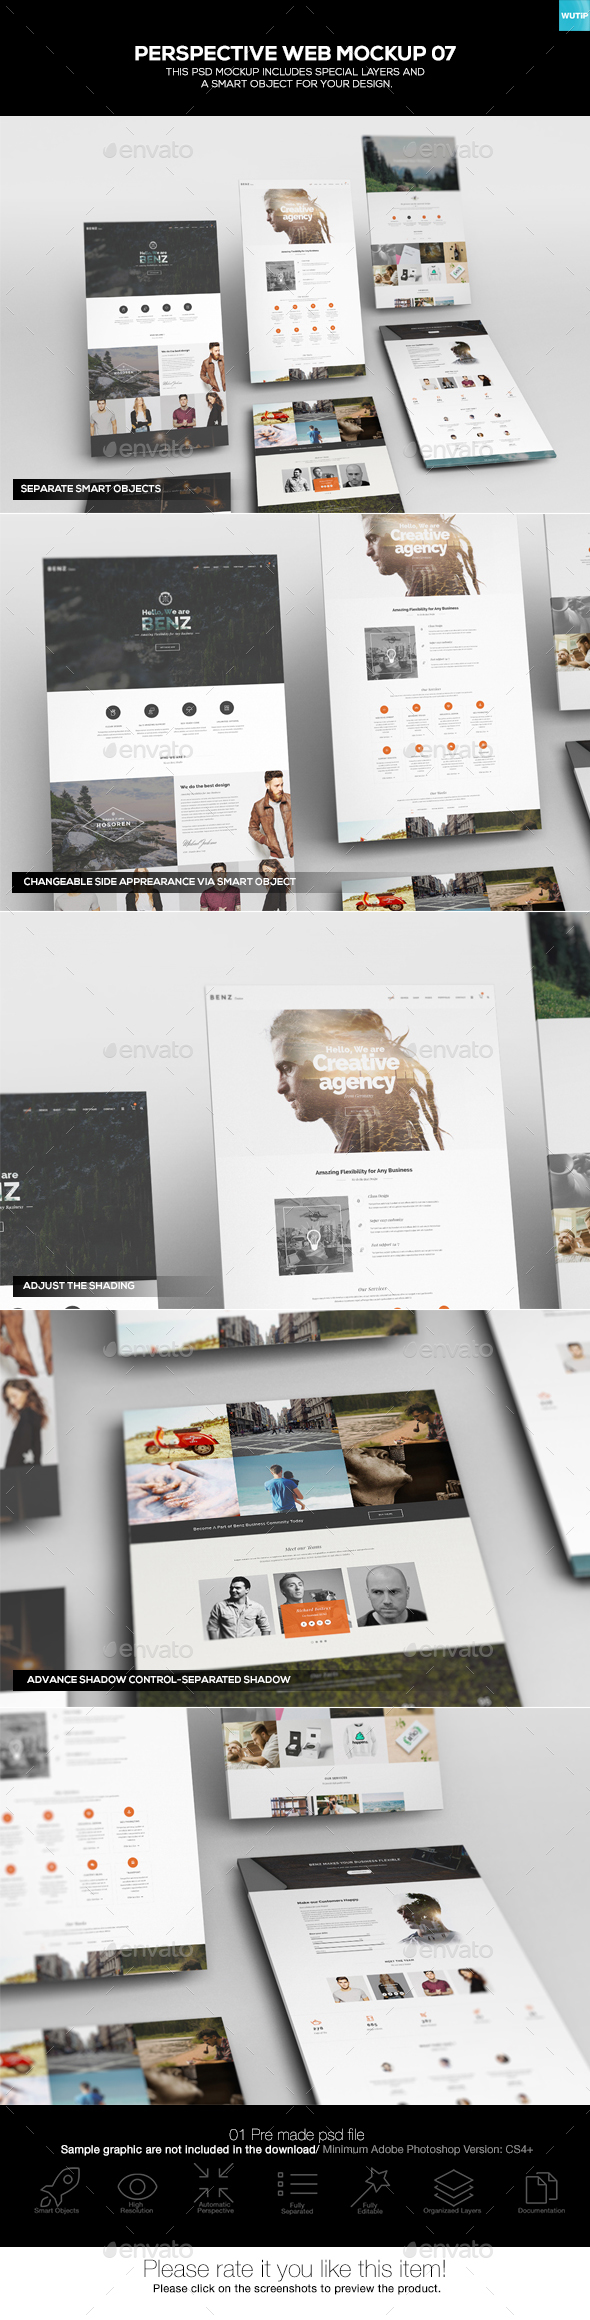 Perspective Web Mockup 07 - Website Displays